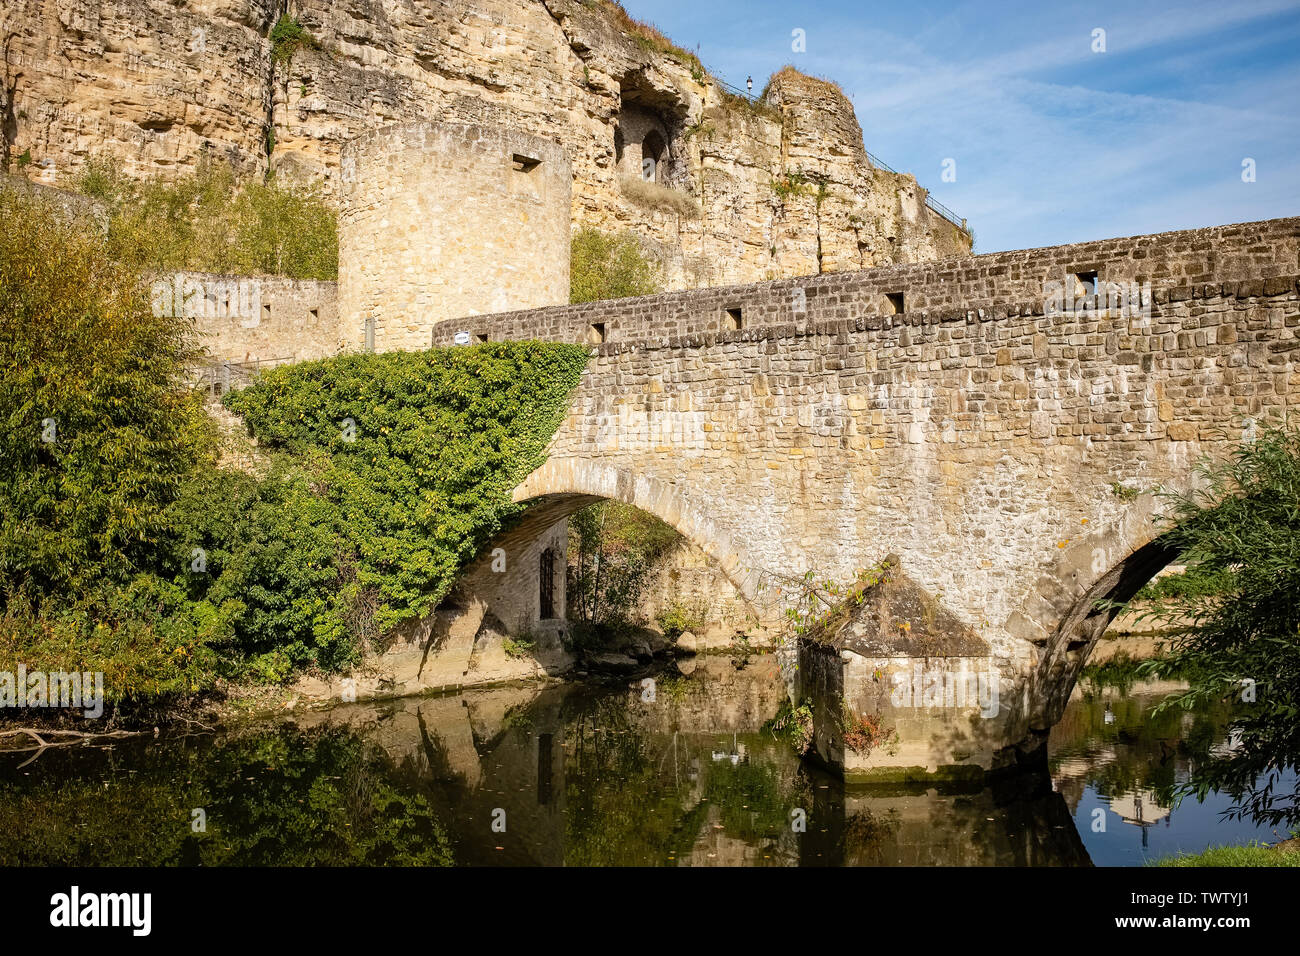 Bock Casemates Stock Photos & Bock Casemates Stock Images